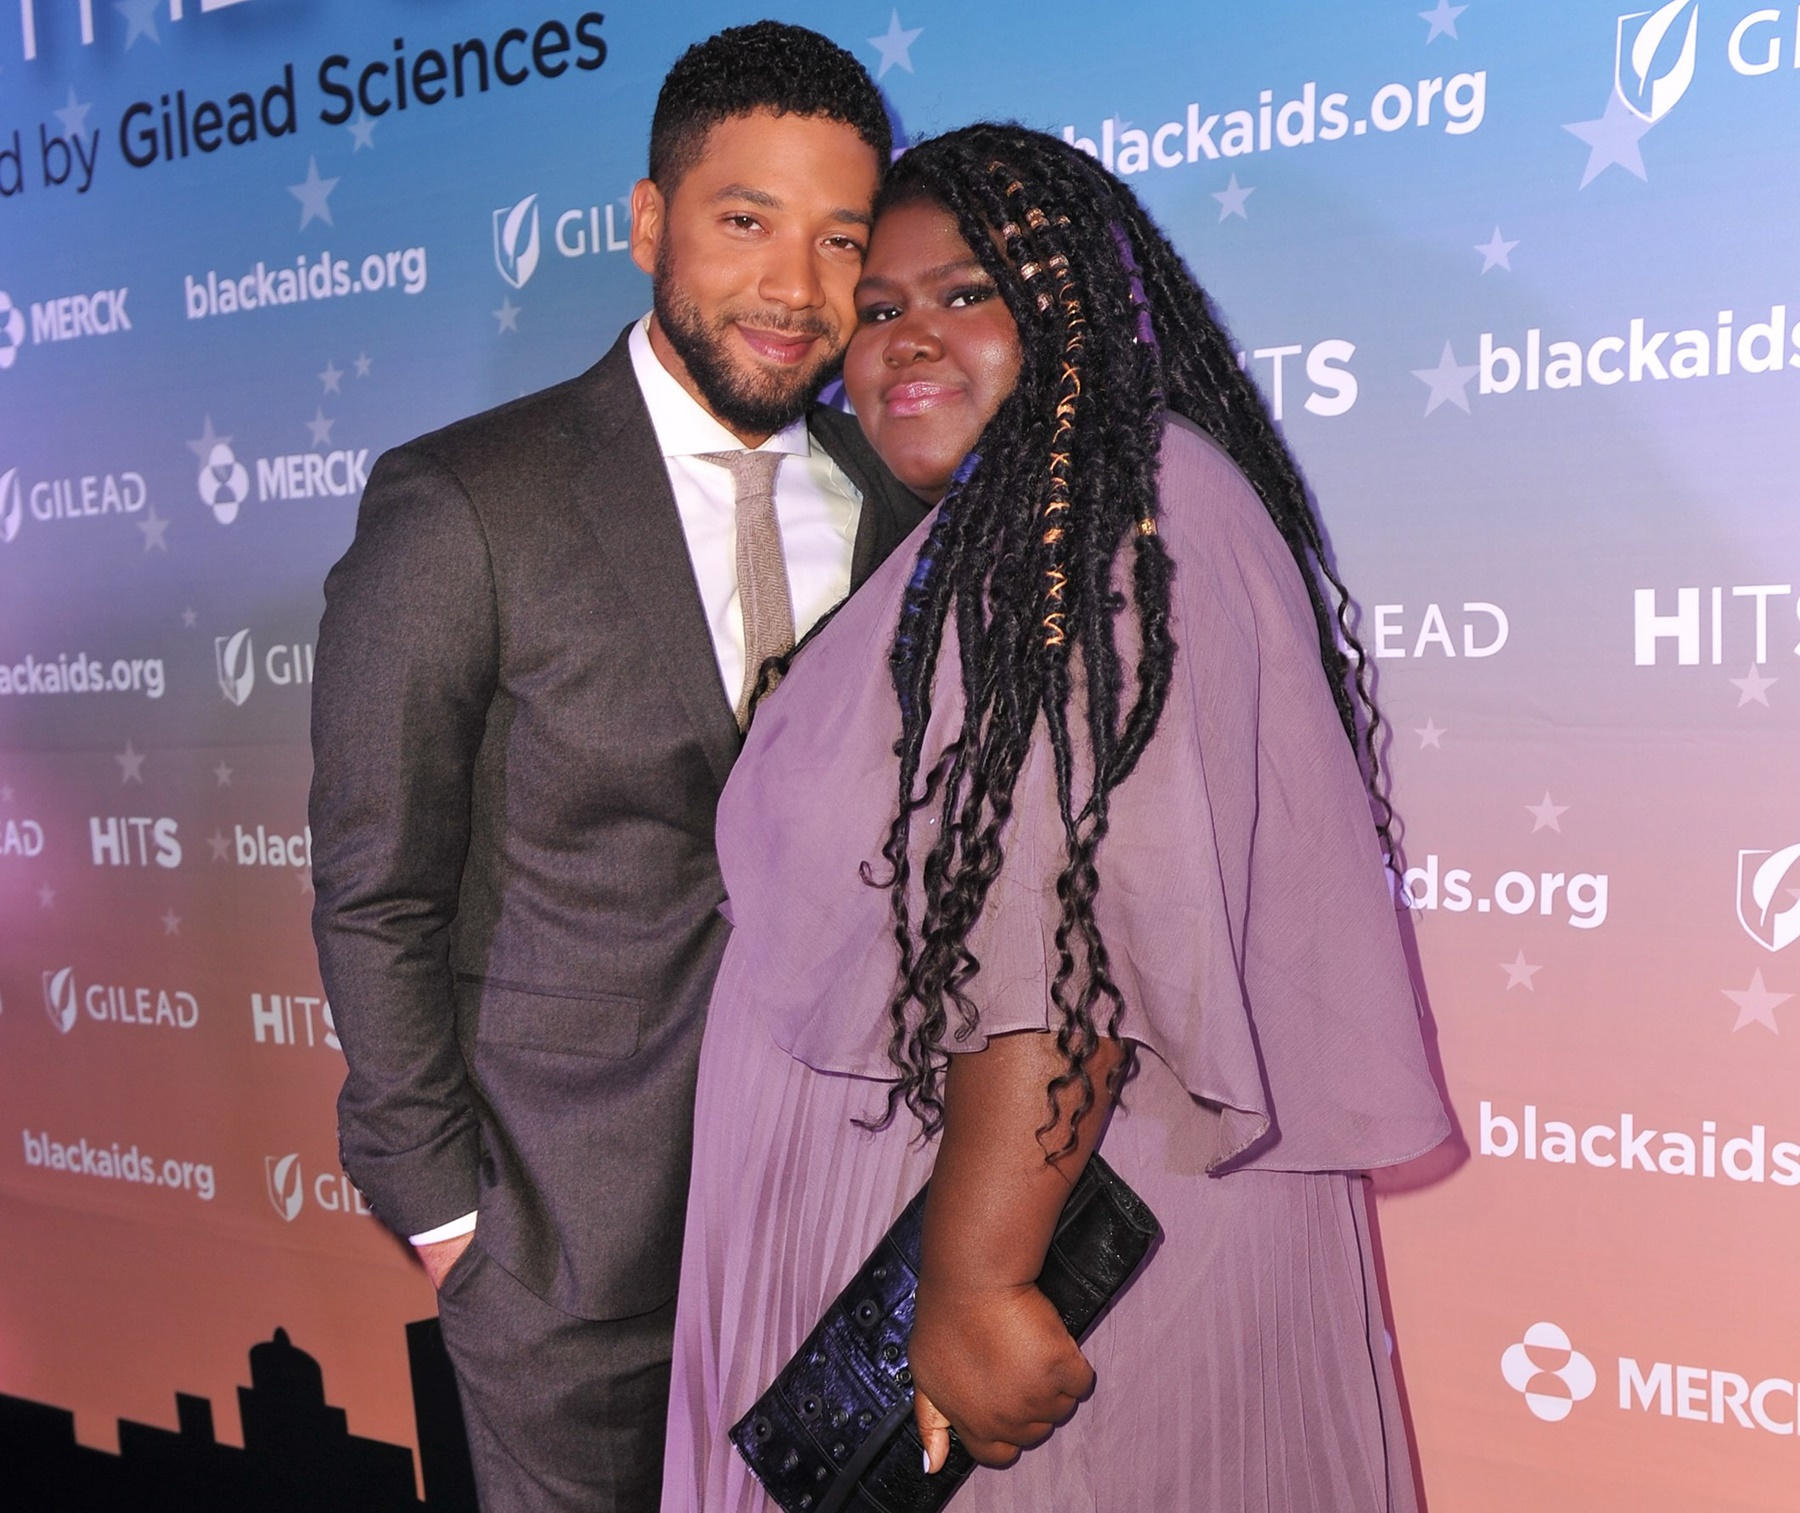 Police Release Persons Of Interest Photos In Jussie Smollett Hate Crime Assault